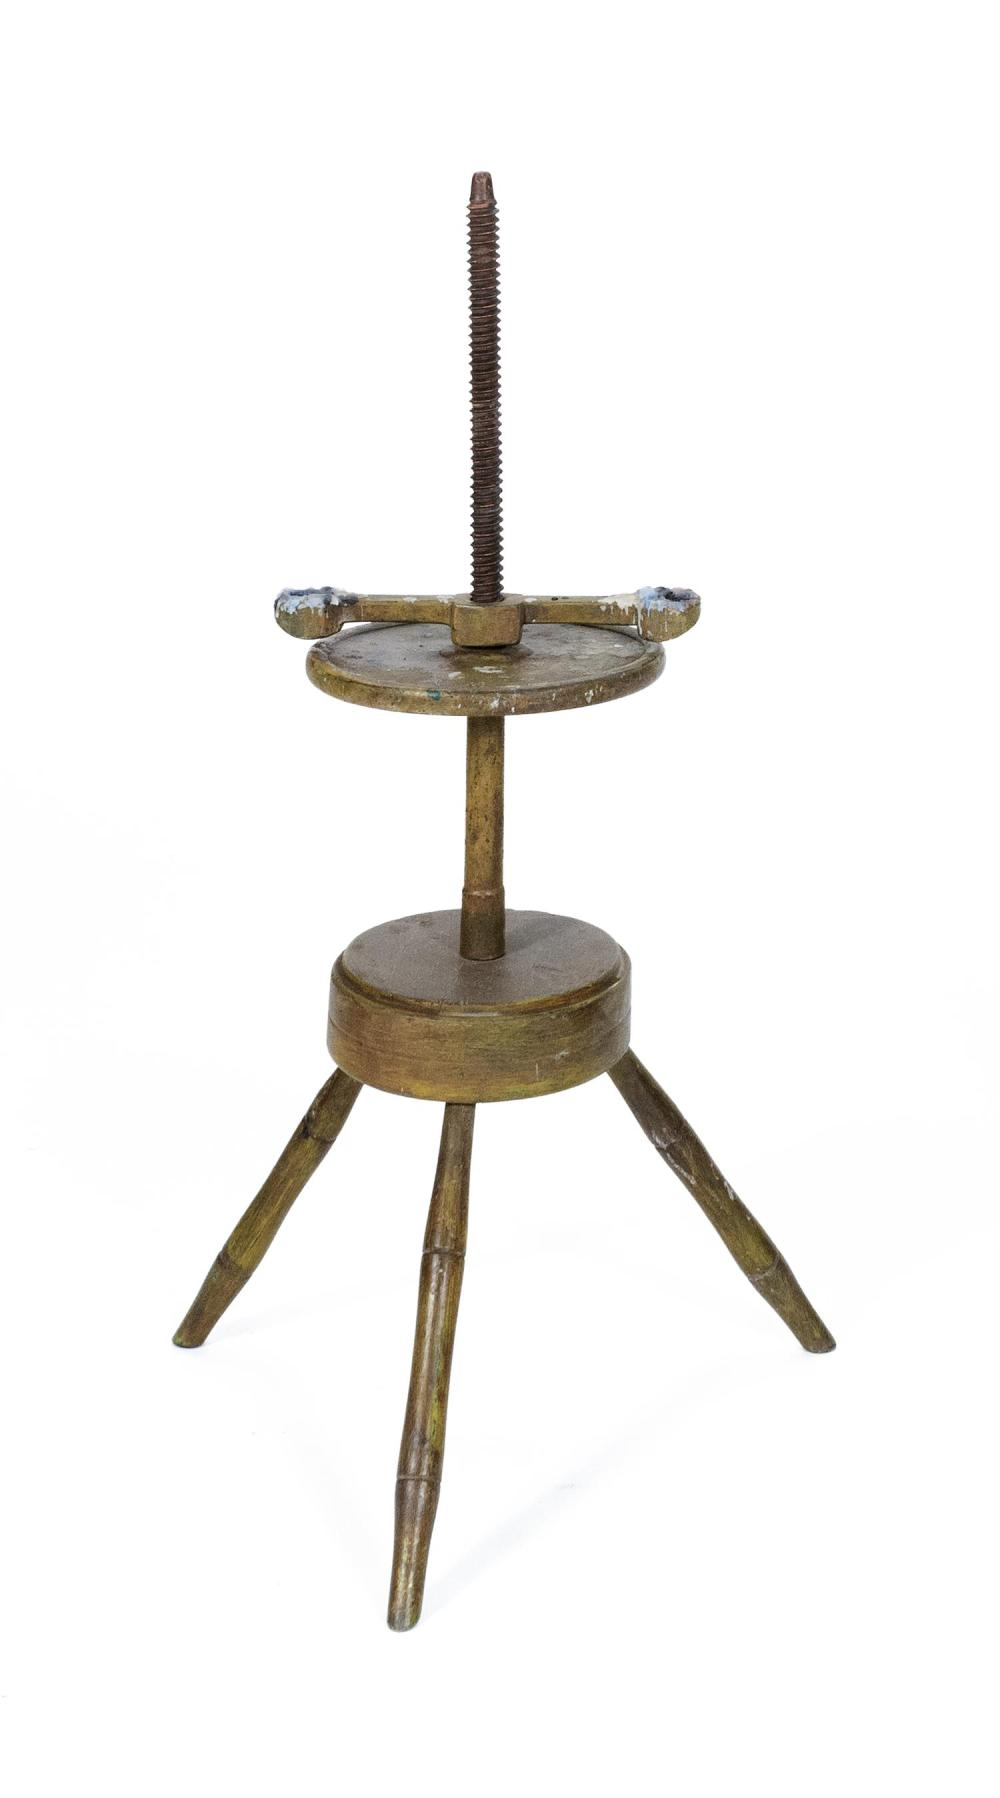 YELLOW-PAINTED CANDLESTAND With turned splayed legs. Height 38